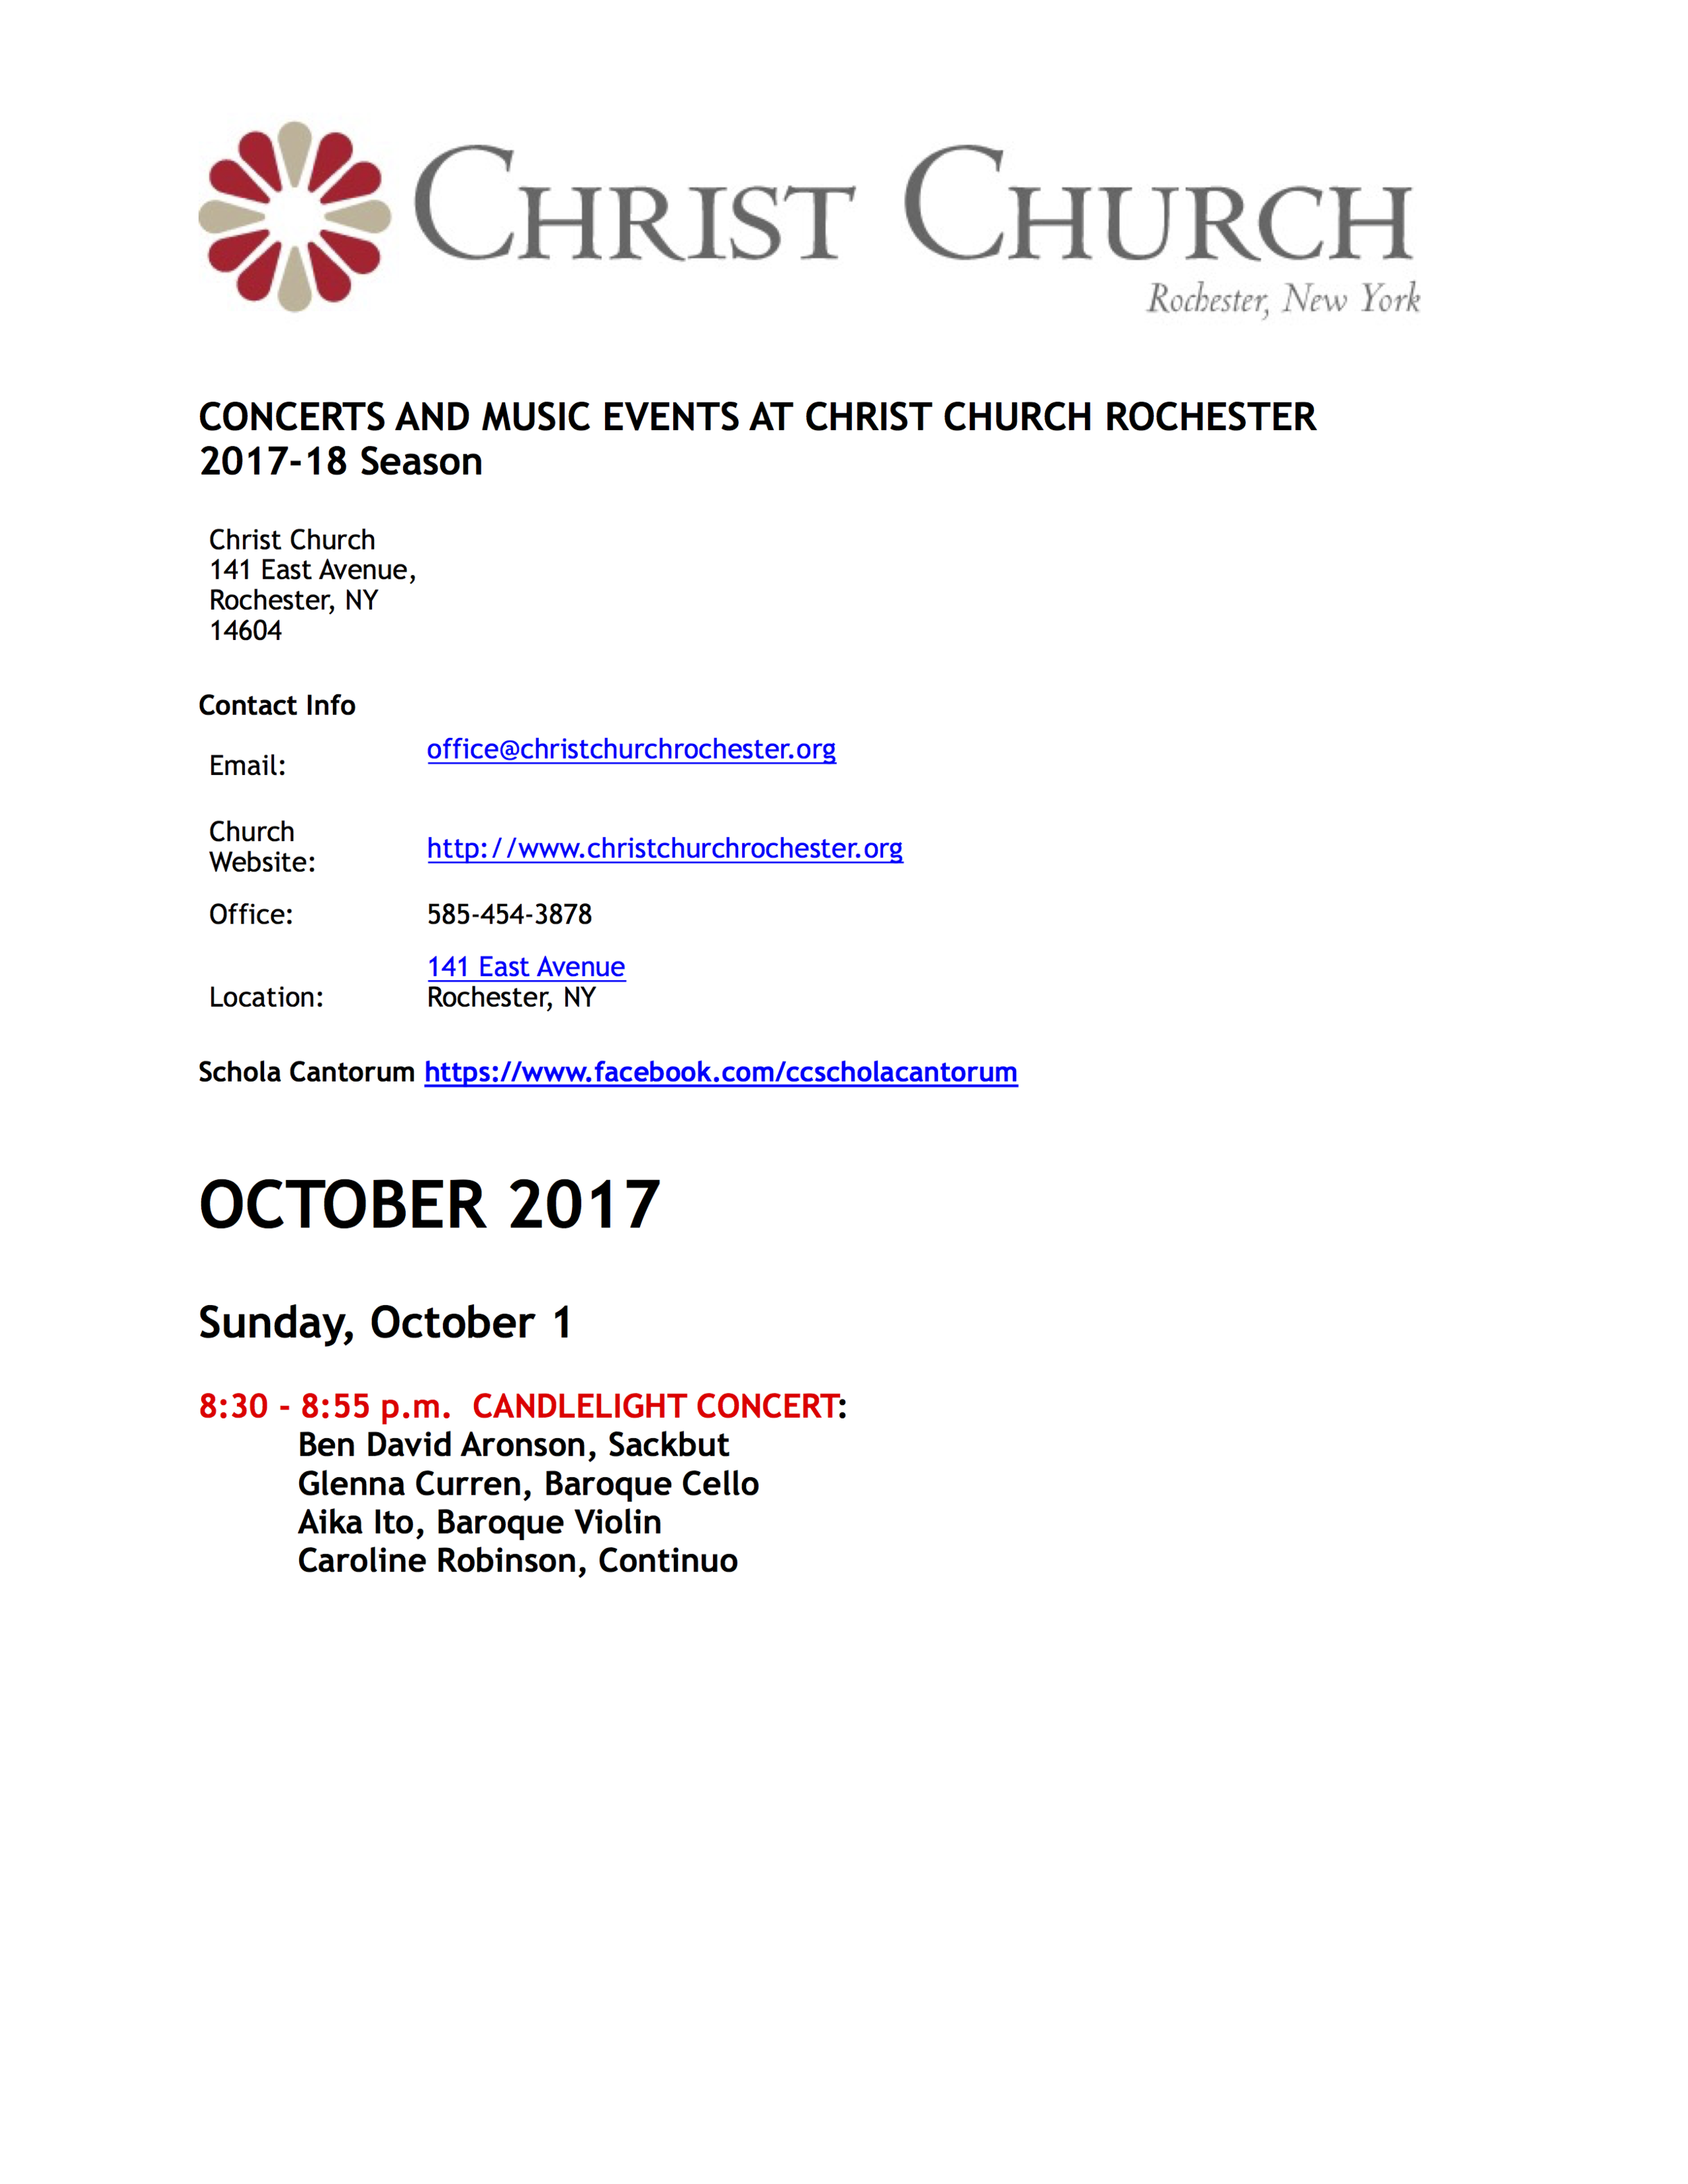 *CC Candlelight Concerts DRAFT 2017-18.png